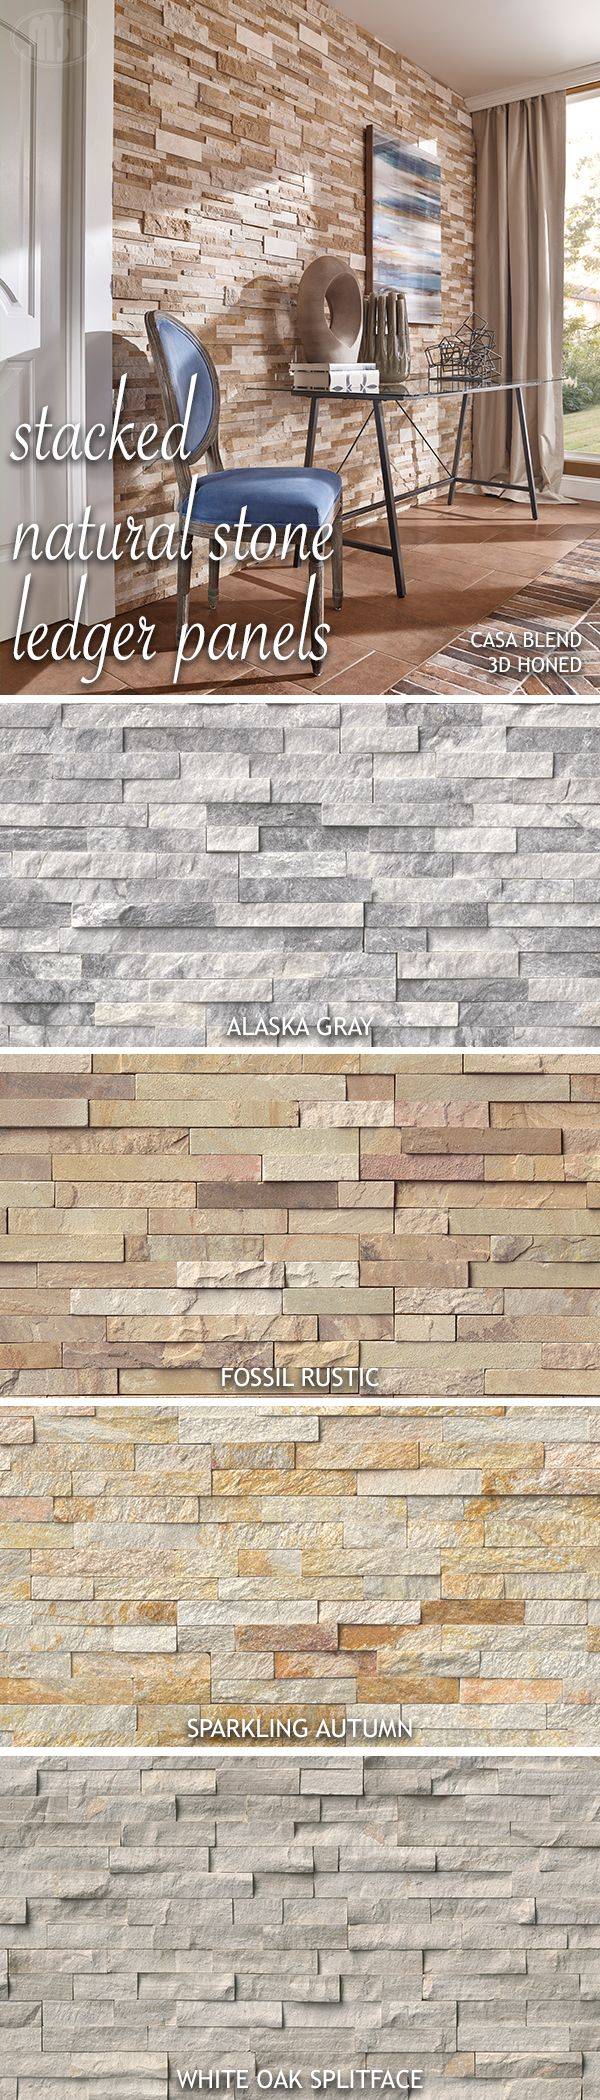 Designer faves = stacked natural stone ledger panels! Reimagine stacked stone inside your home and transform an ordinary wall into a stunning feature wall with one of these stylish standouts.